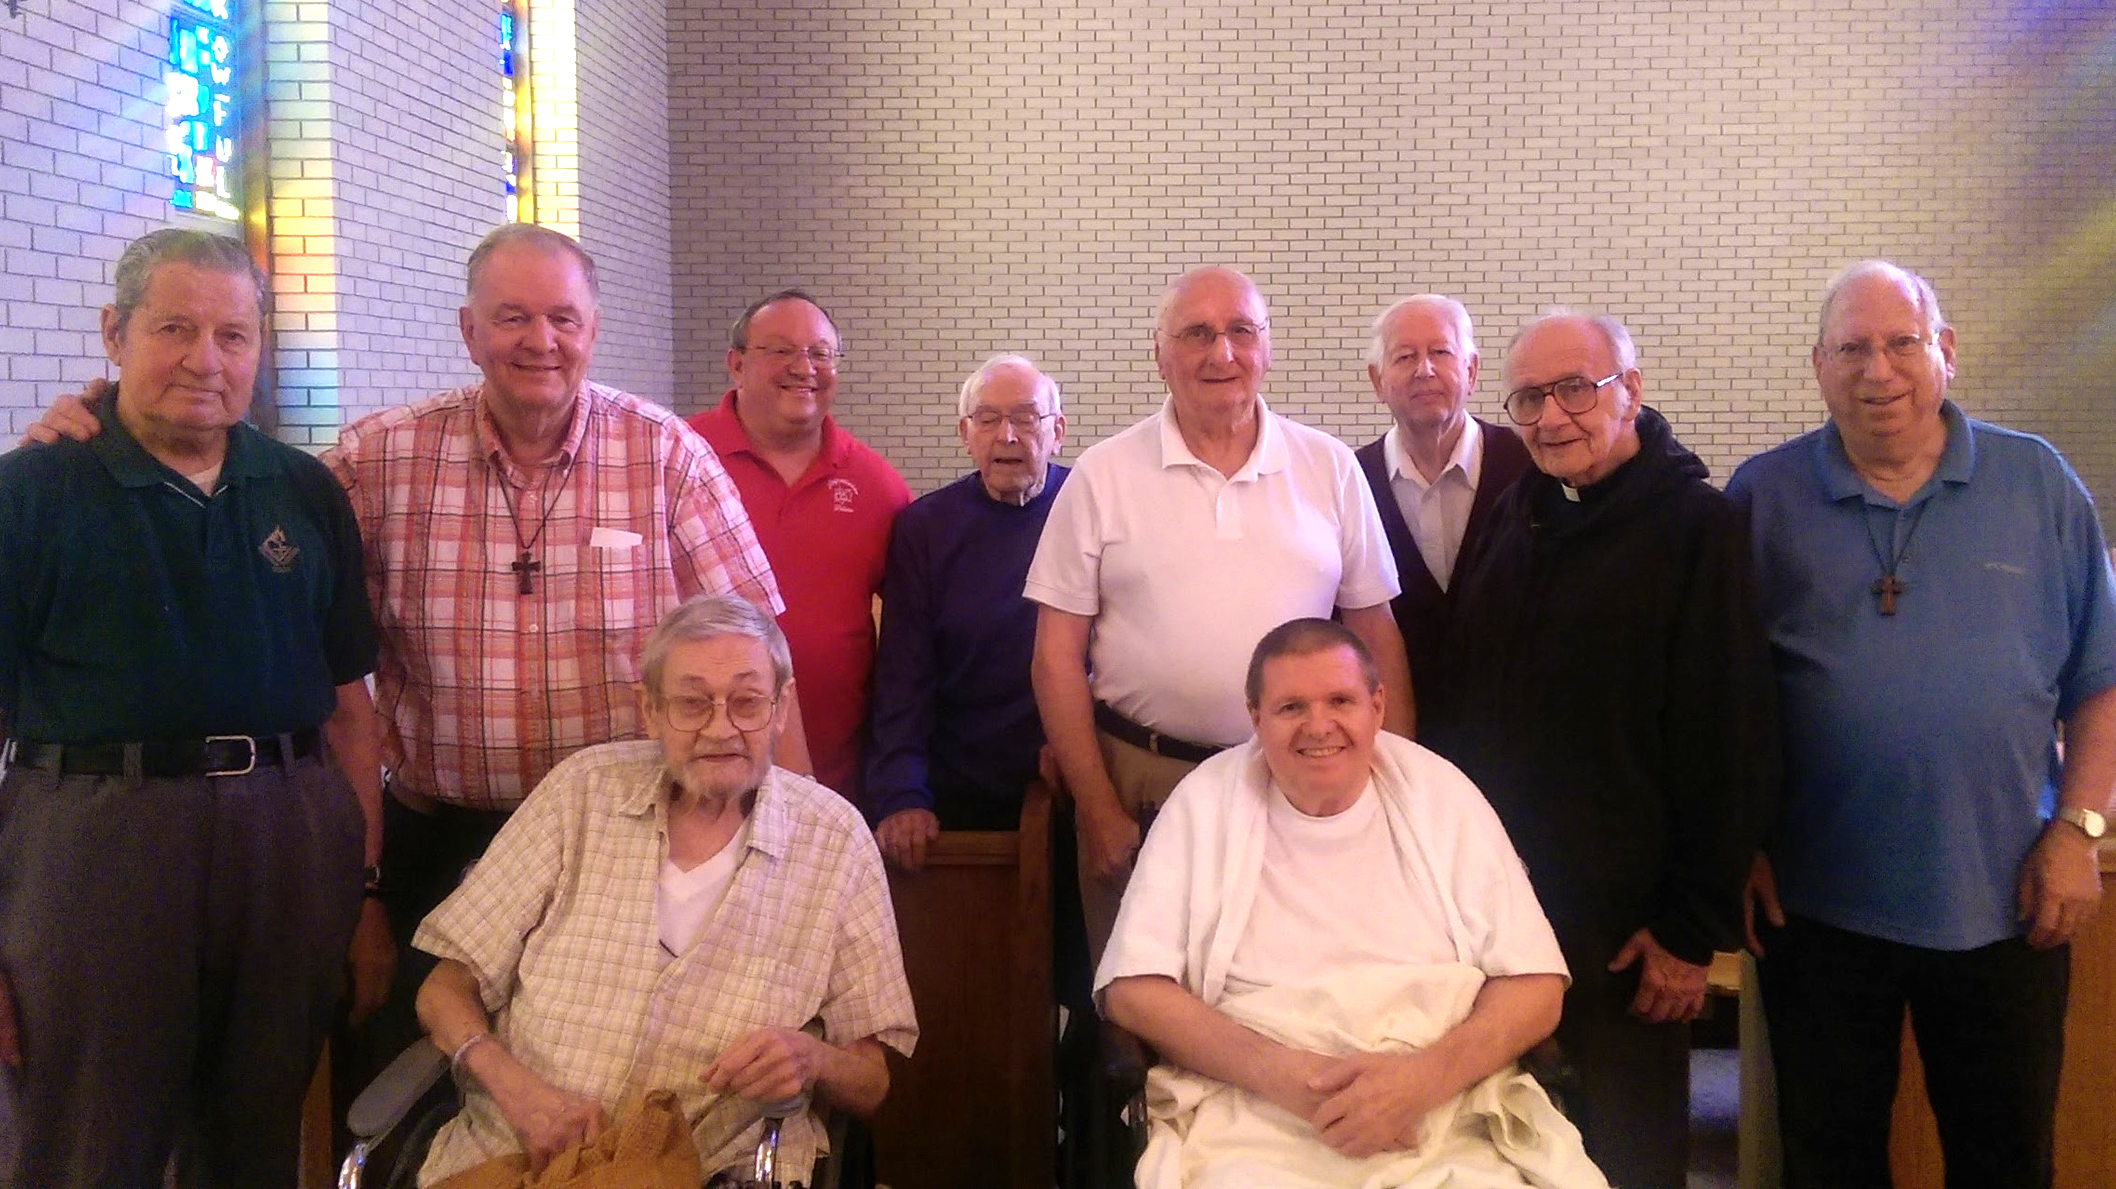 Thanks to funders like the Bernard Heerey Foundation, retired Augustinians can live in modest, prayer-filled retirement communities.